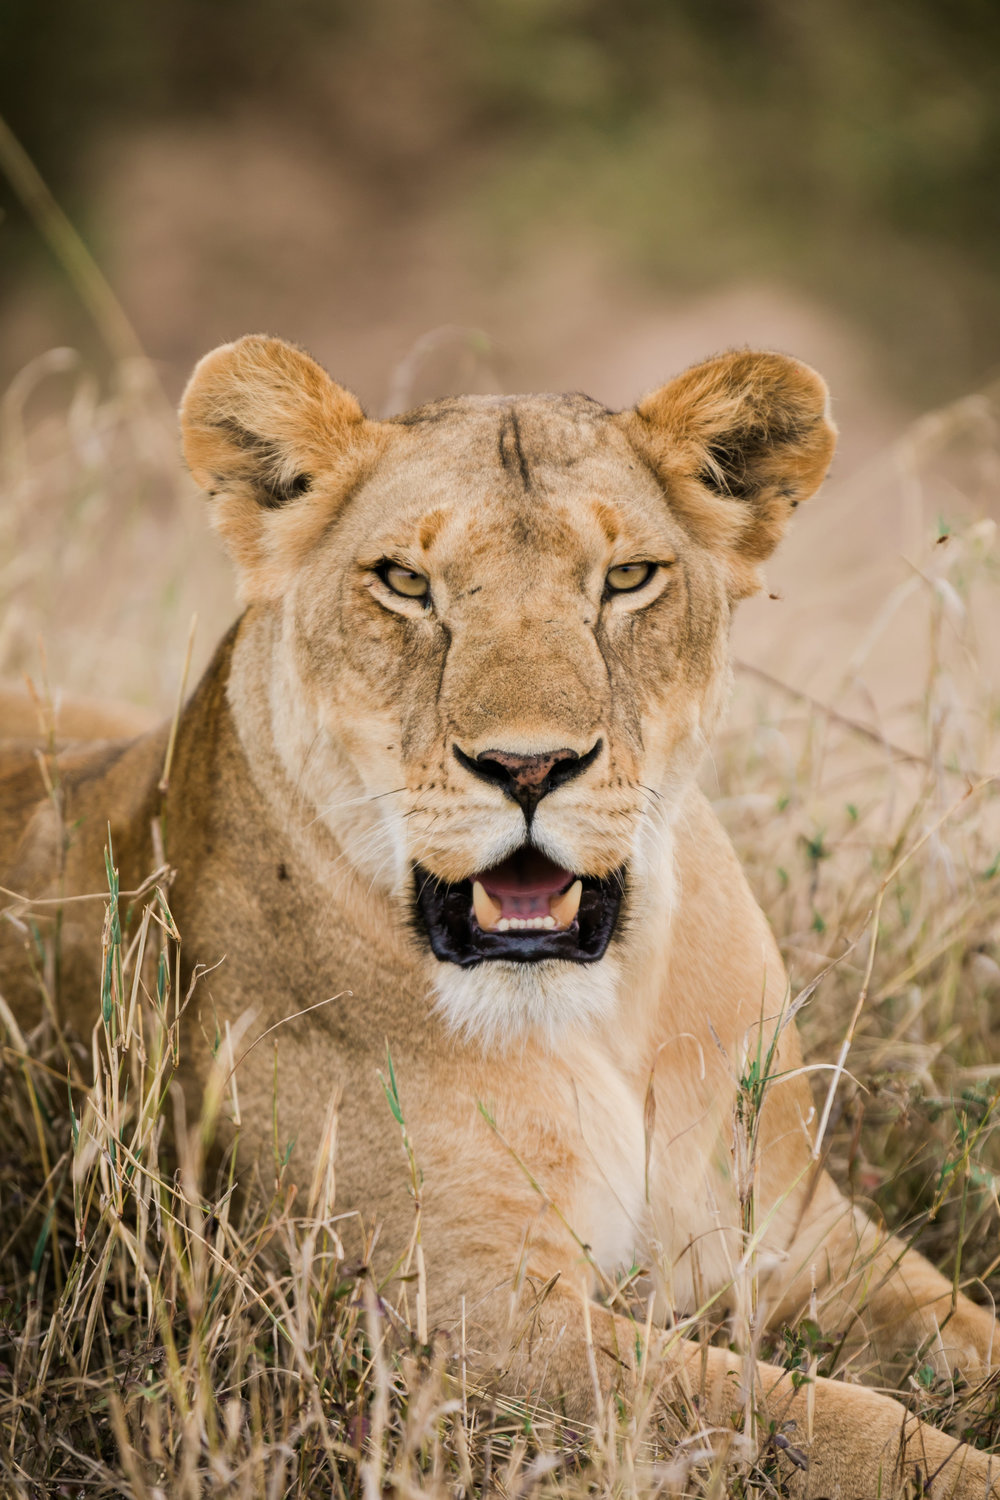 Female lion on Safari Kenya Ph. Valorie Darling